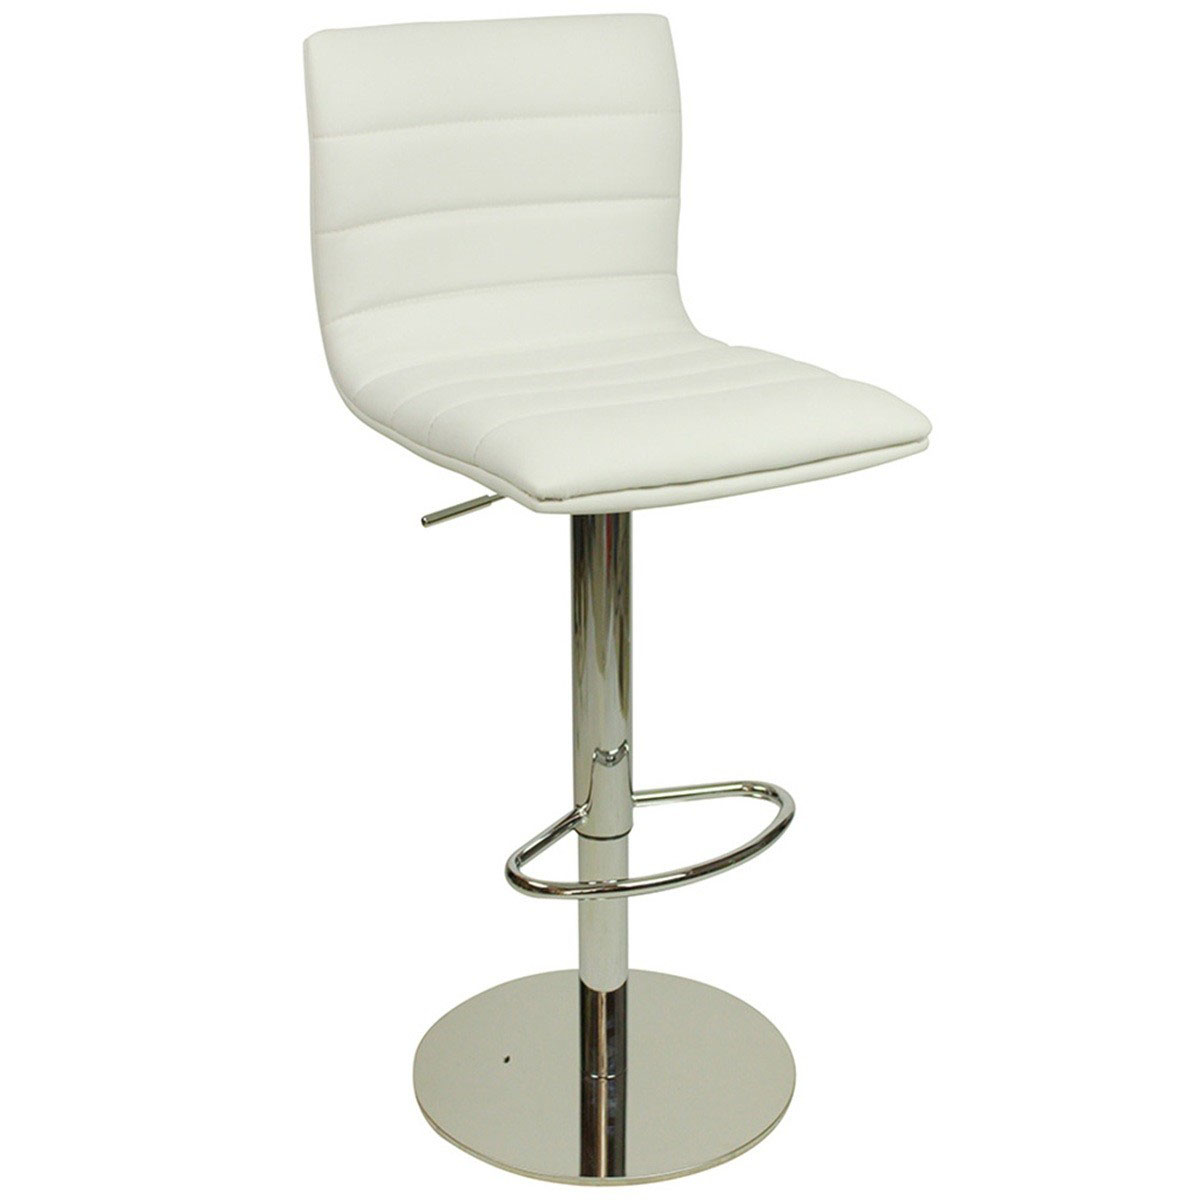 Deluxe Aldo Bar Stool - White Product Image